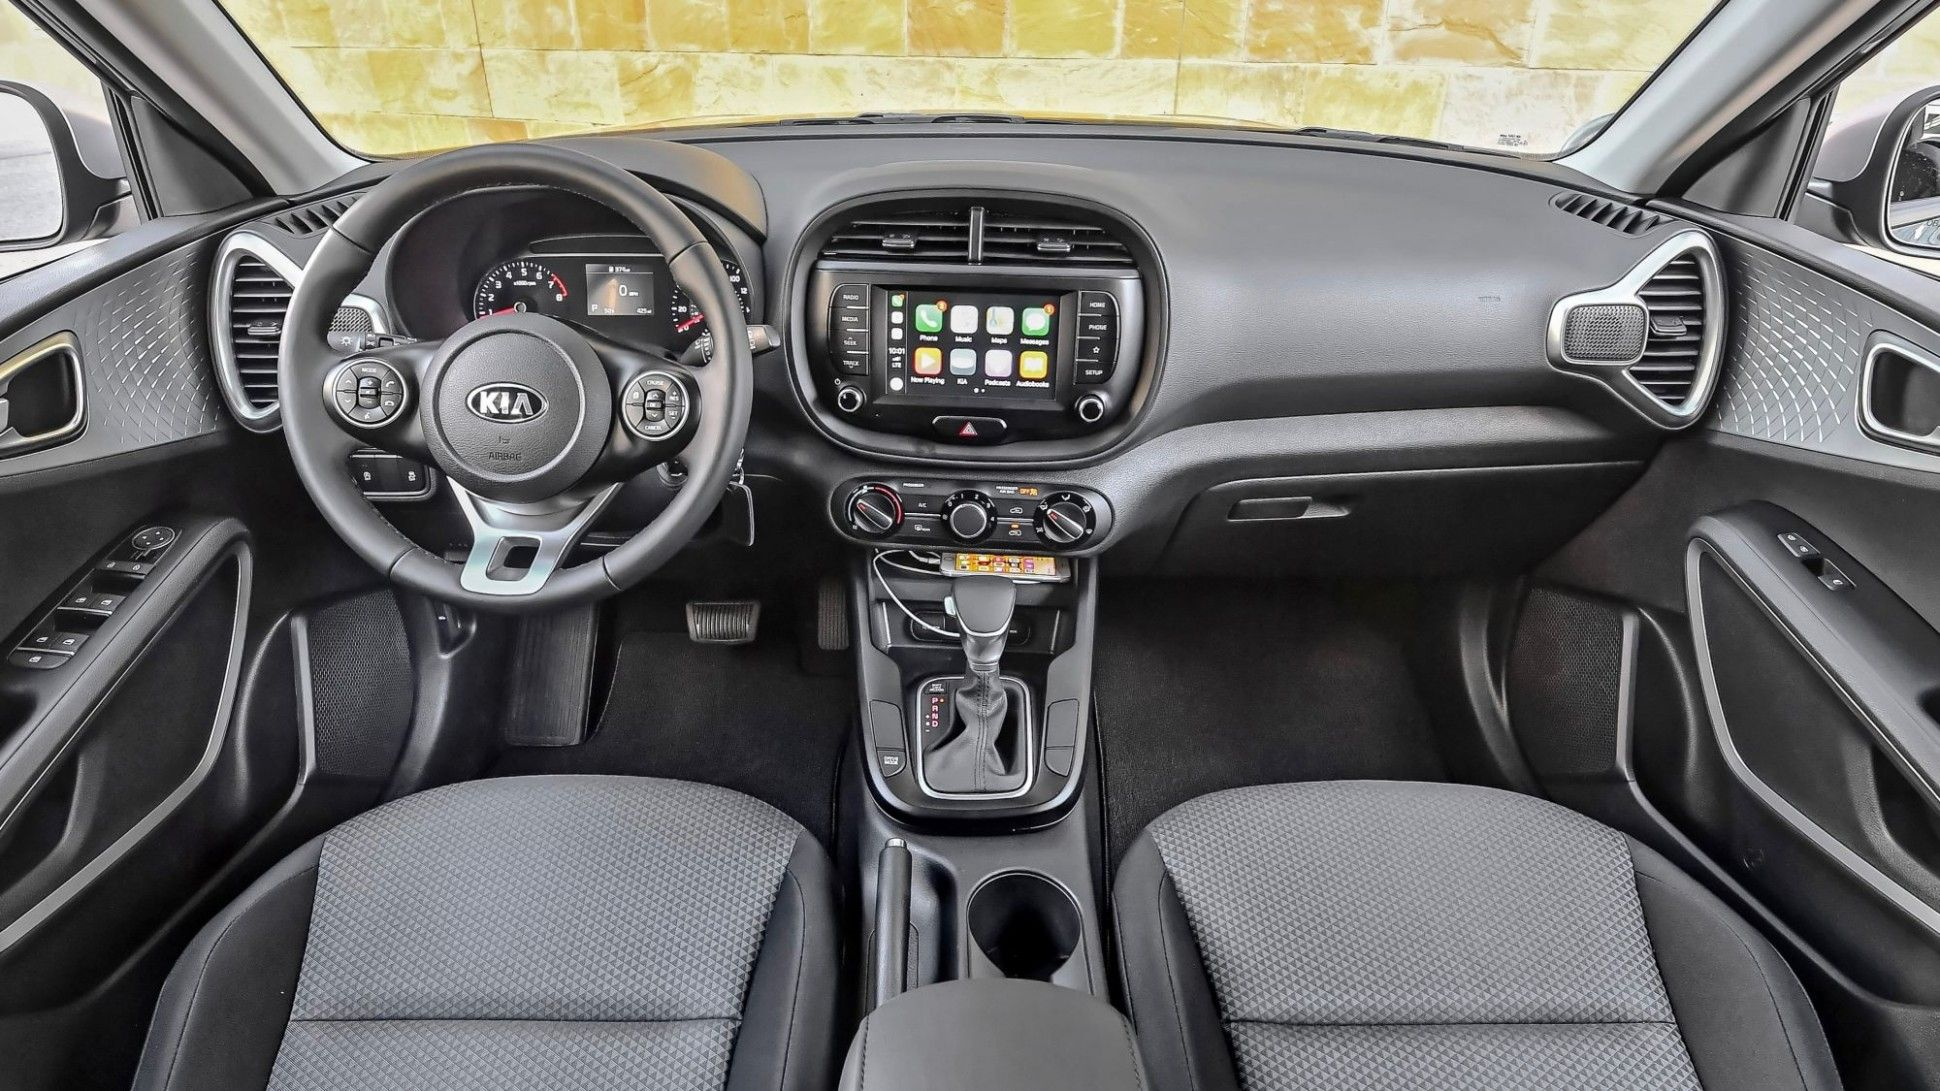 Kia Quoris 2020 Interior Prices In 2020 Kia Soul Accessories Kia Soul Kia Soul Interior